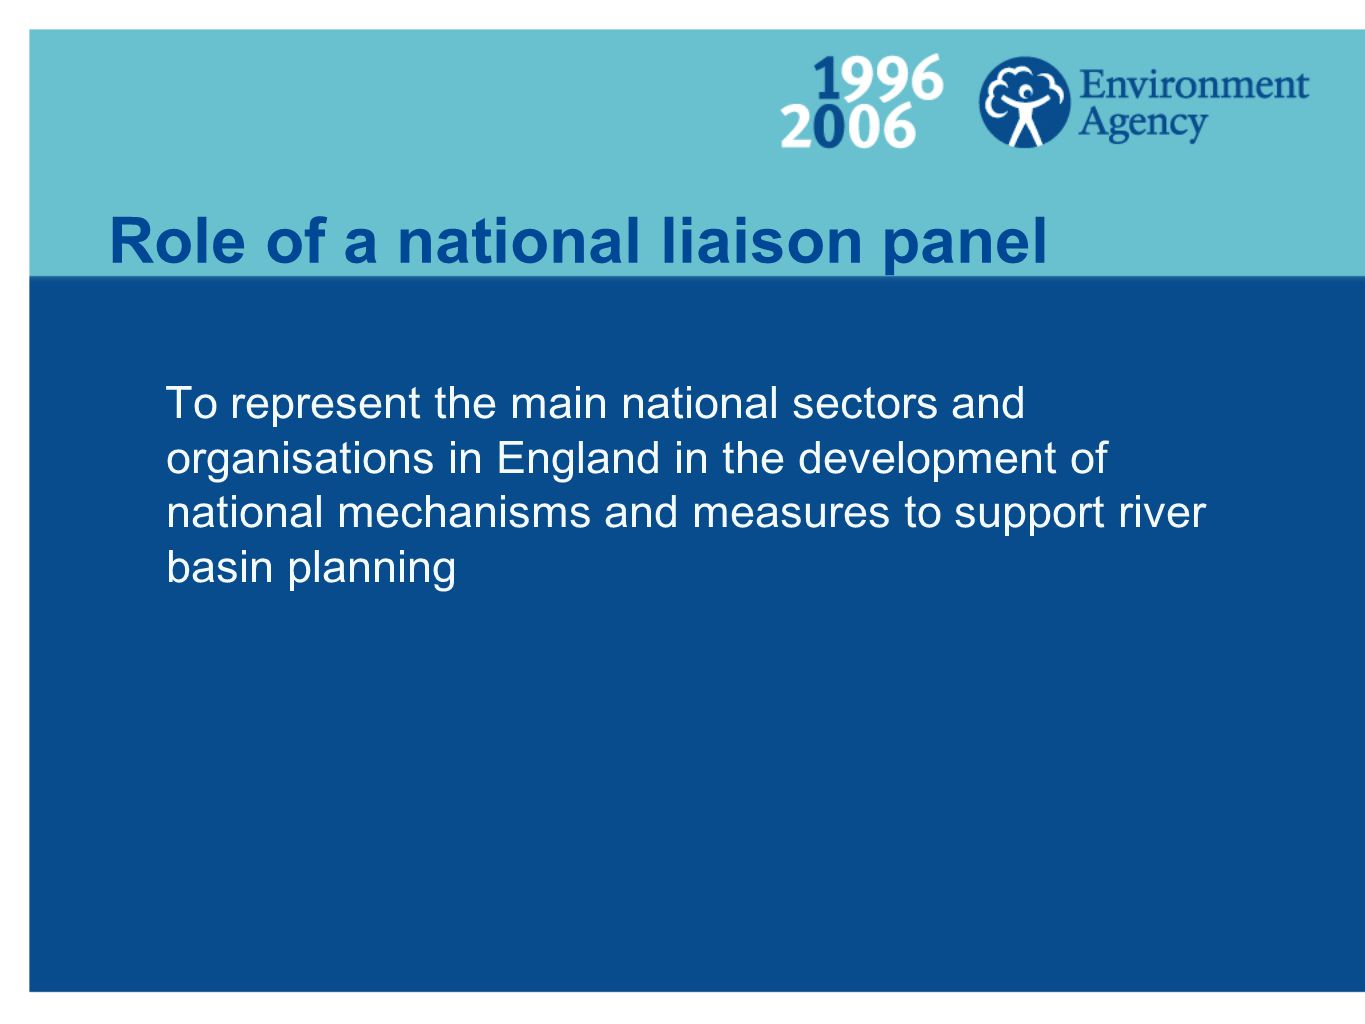 Role of a national liaison panel To represent the main national sectors and organisations in England in the development of national mechanisms and measures to support river basin planning